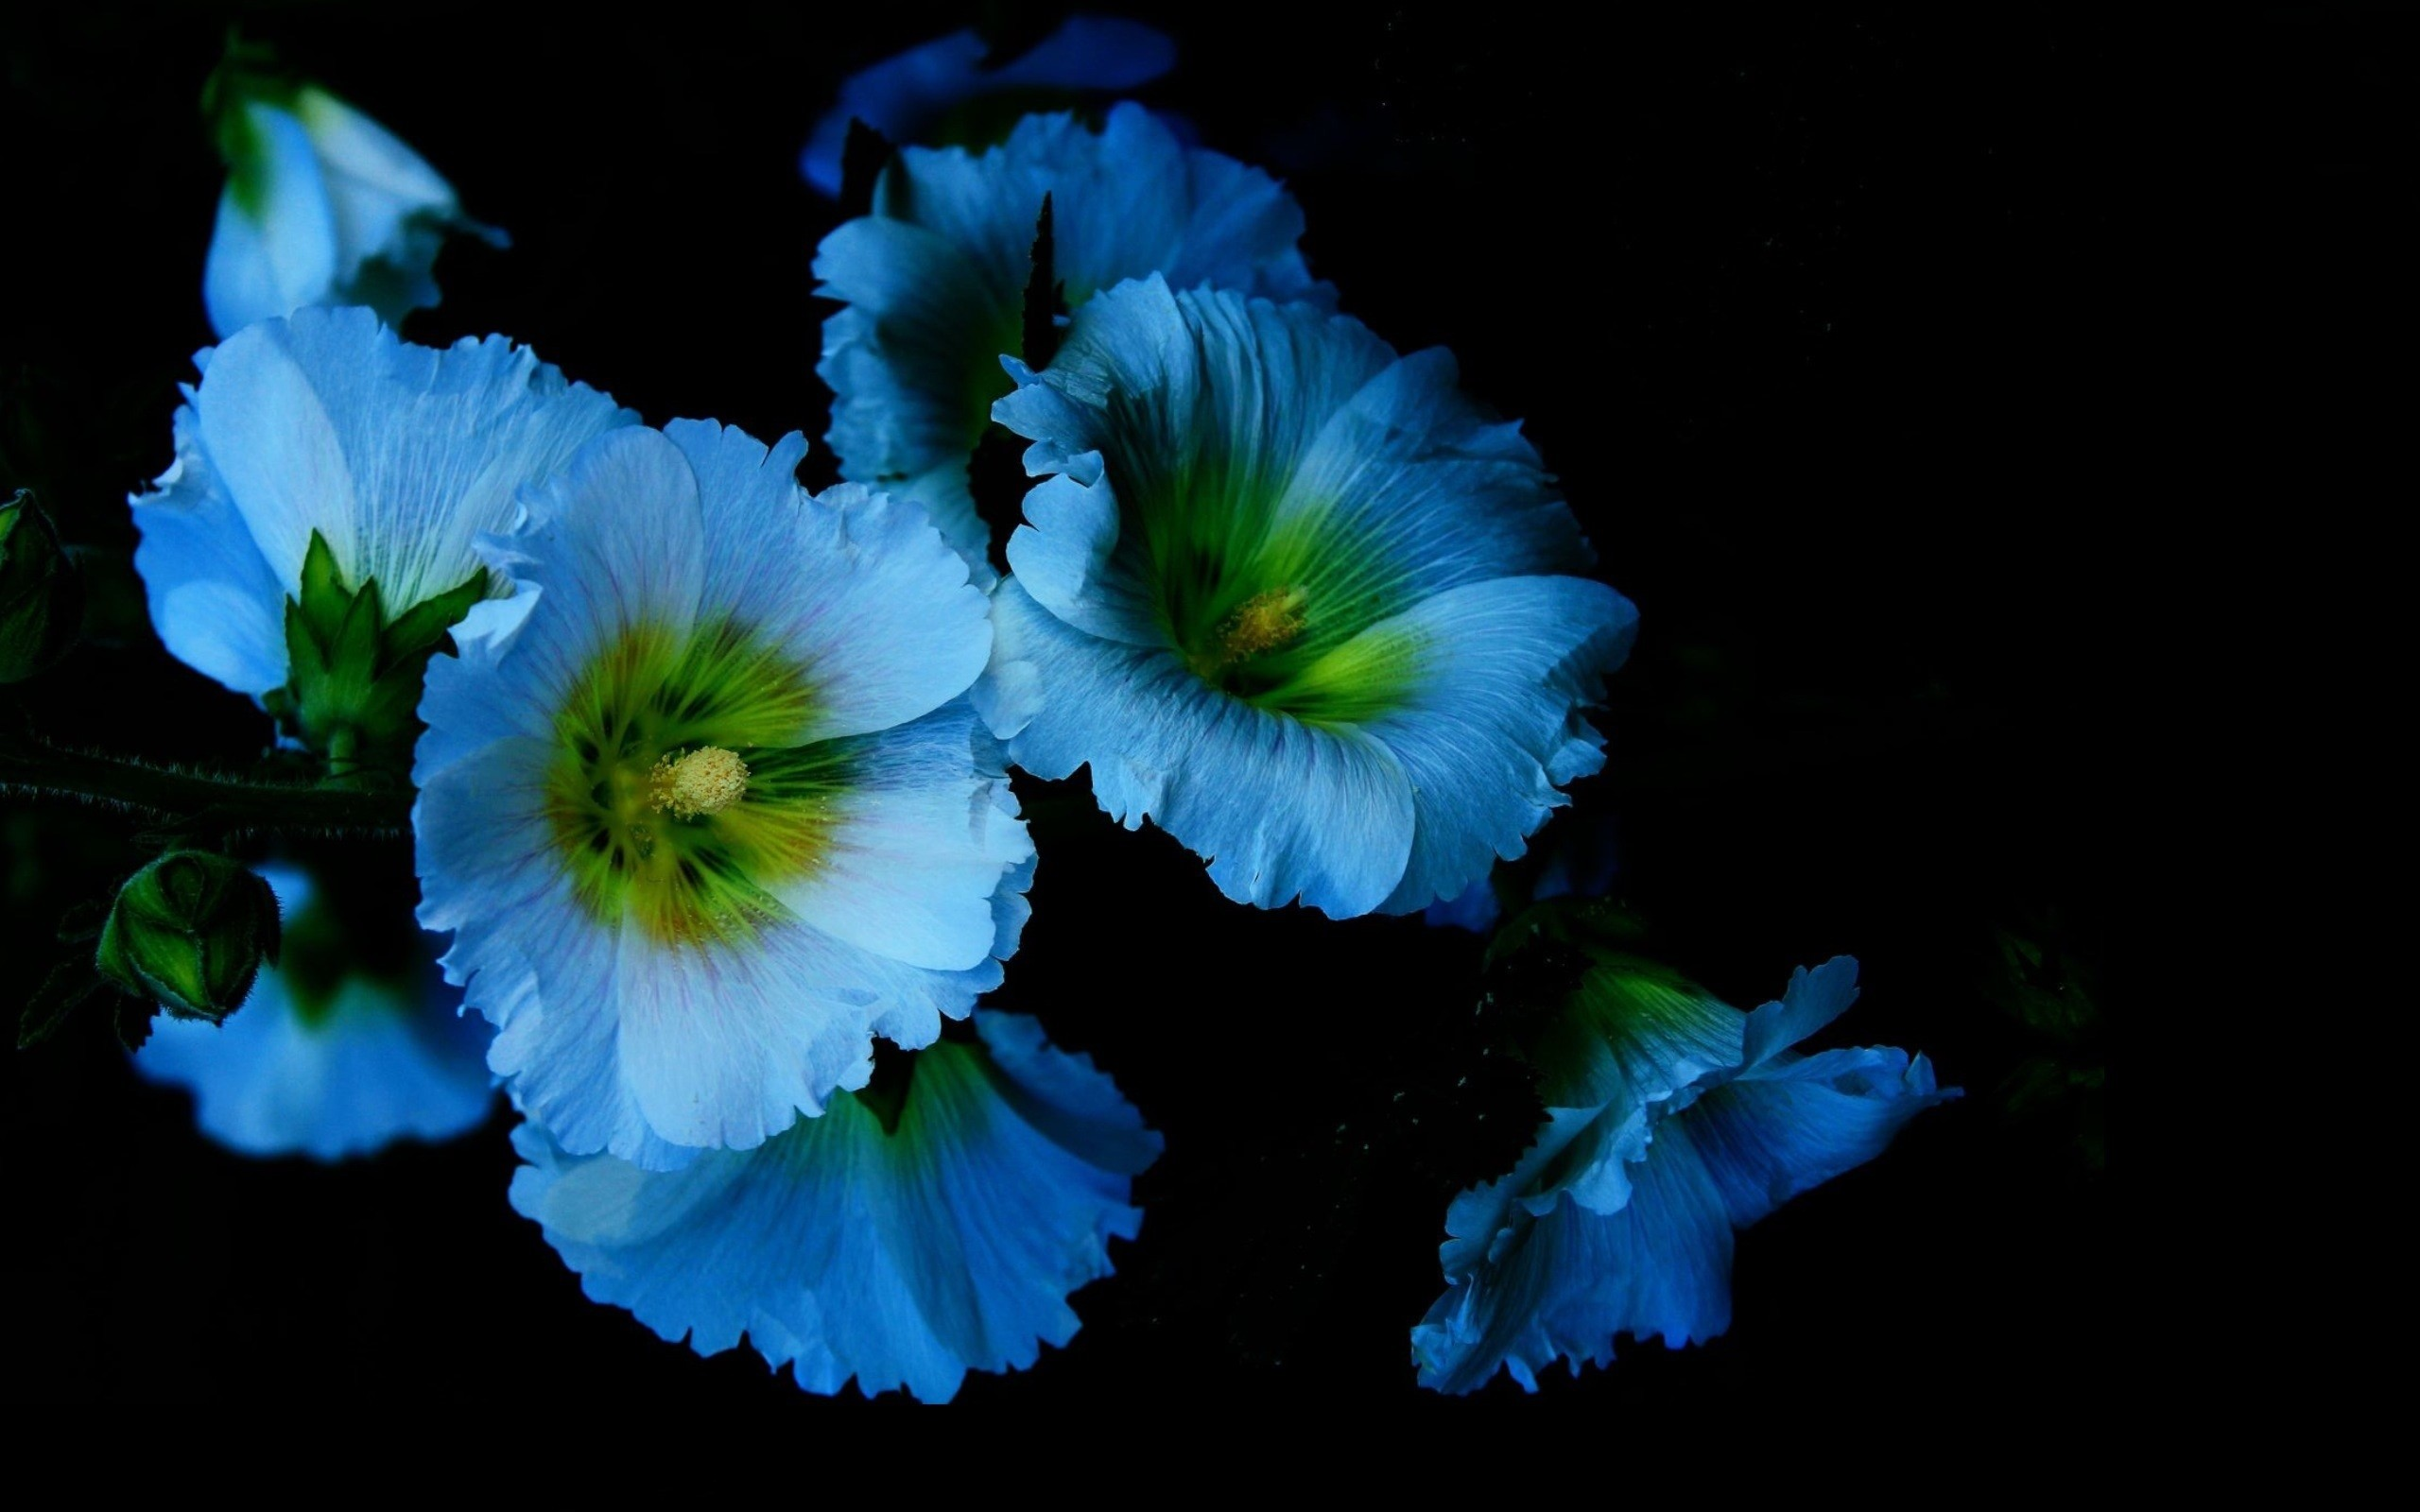 Flowers On Black Background Wallpaper (77+ Images